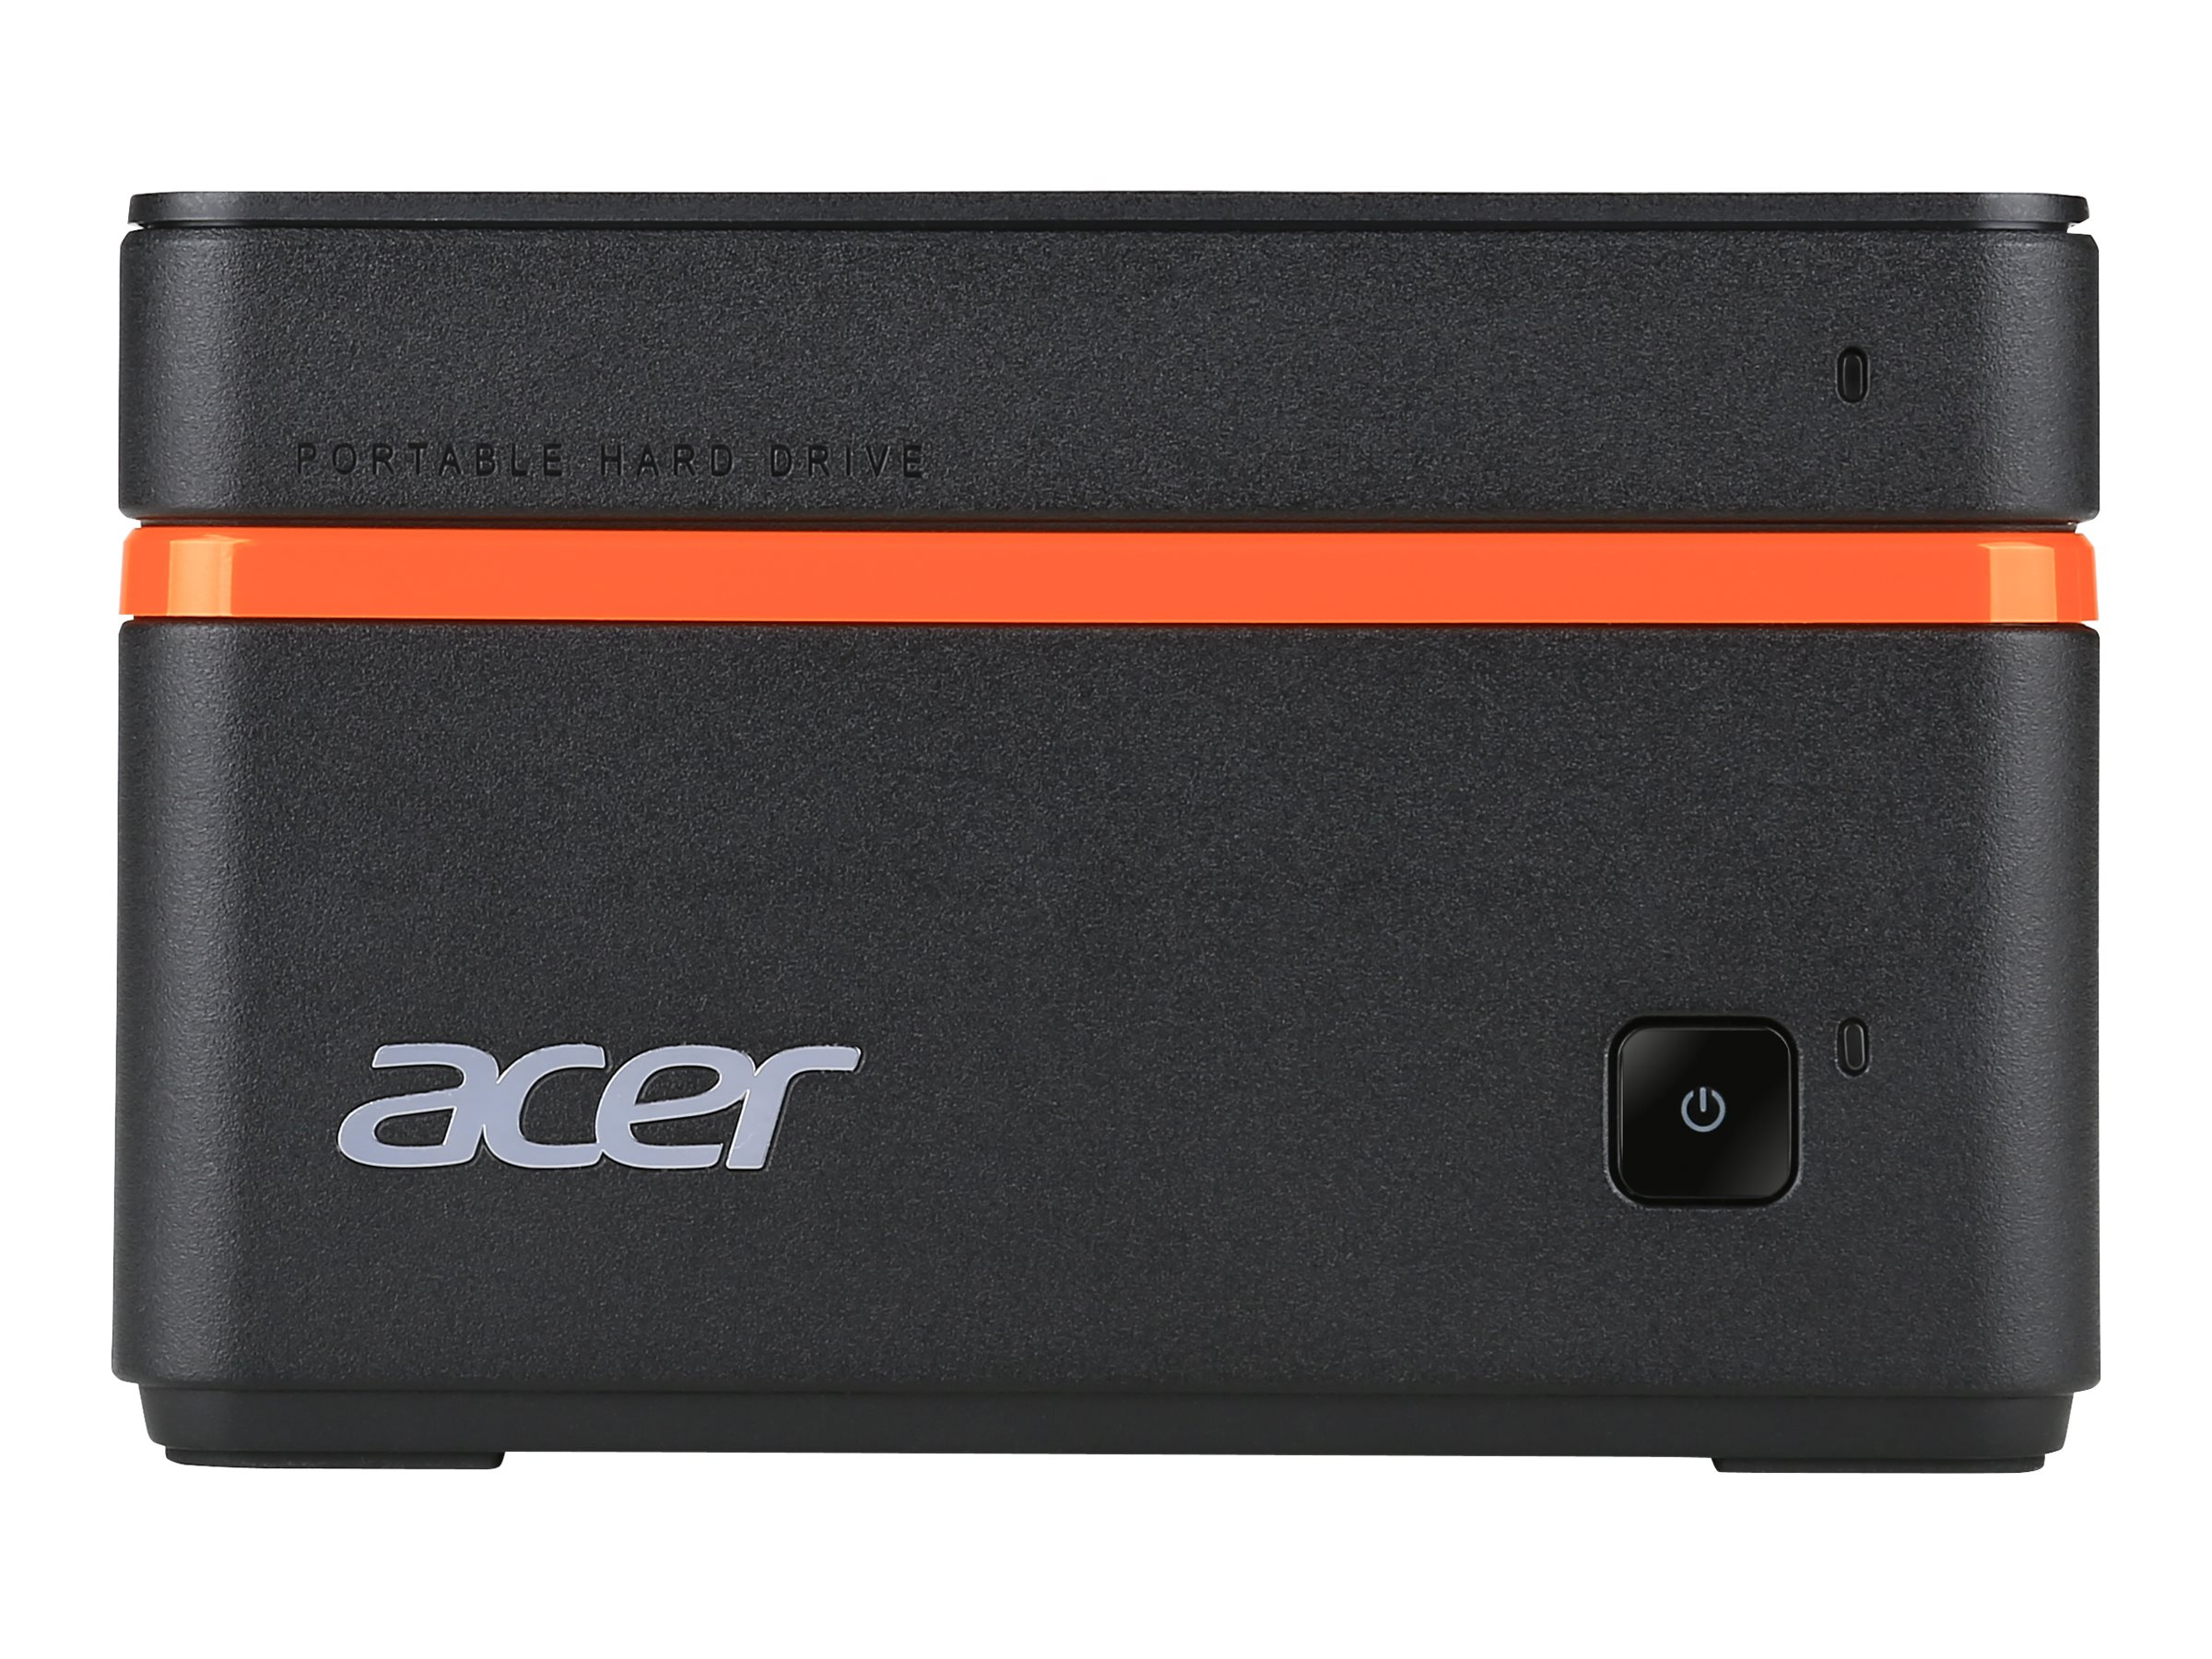 Acer DT.B2AAA.001 Image 4